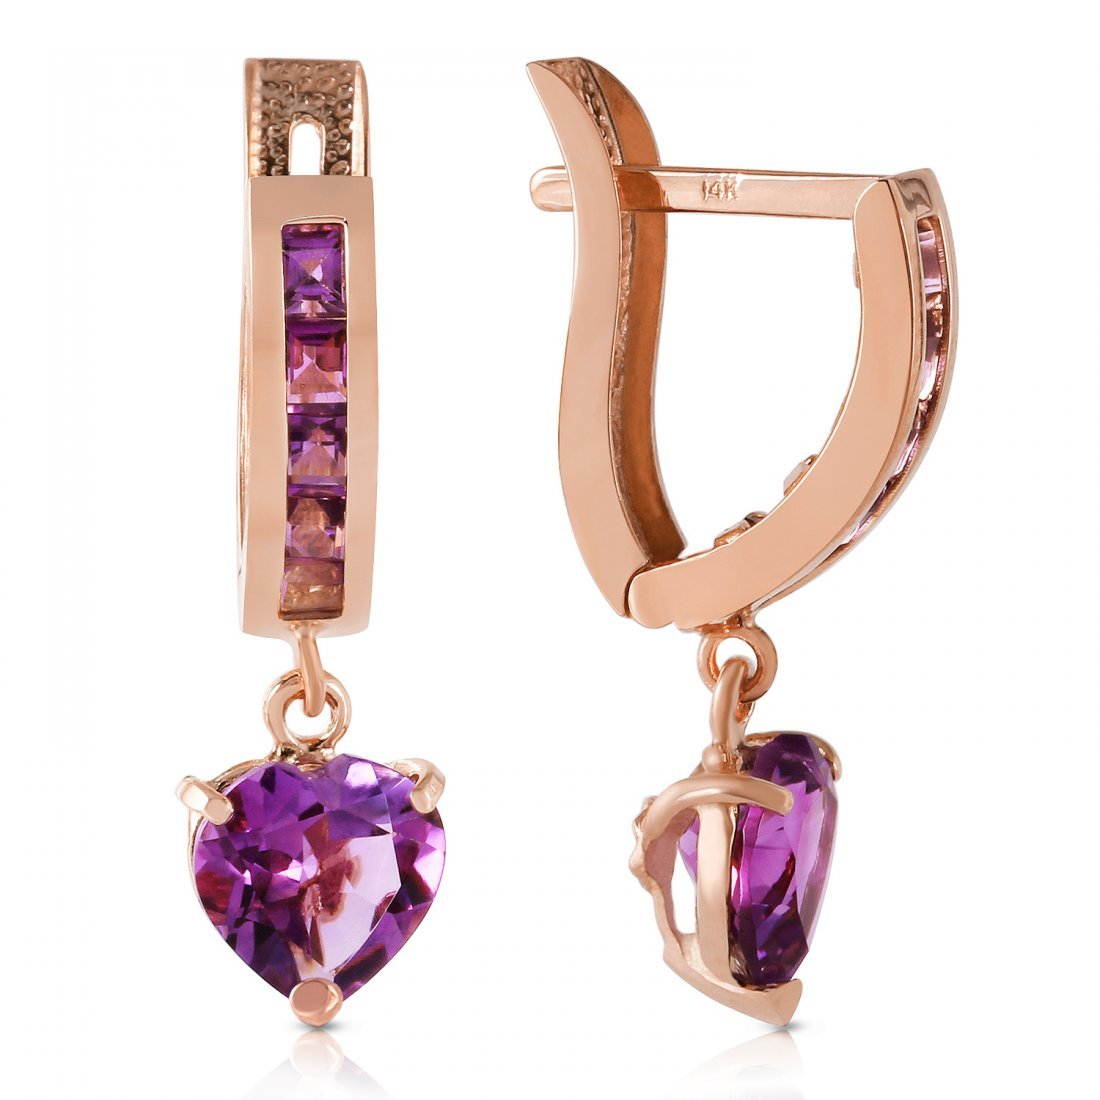 Genuine 3.2 ctw Amethyst Earrings Jewelry 14KT Rose